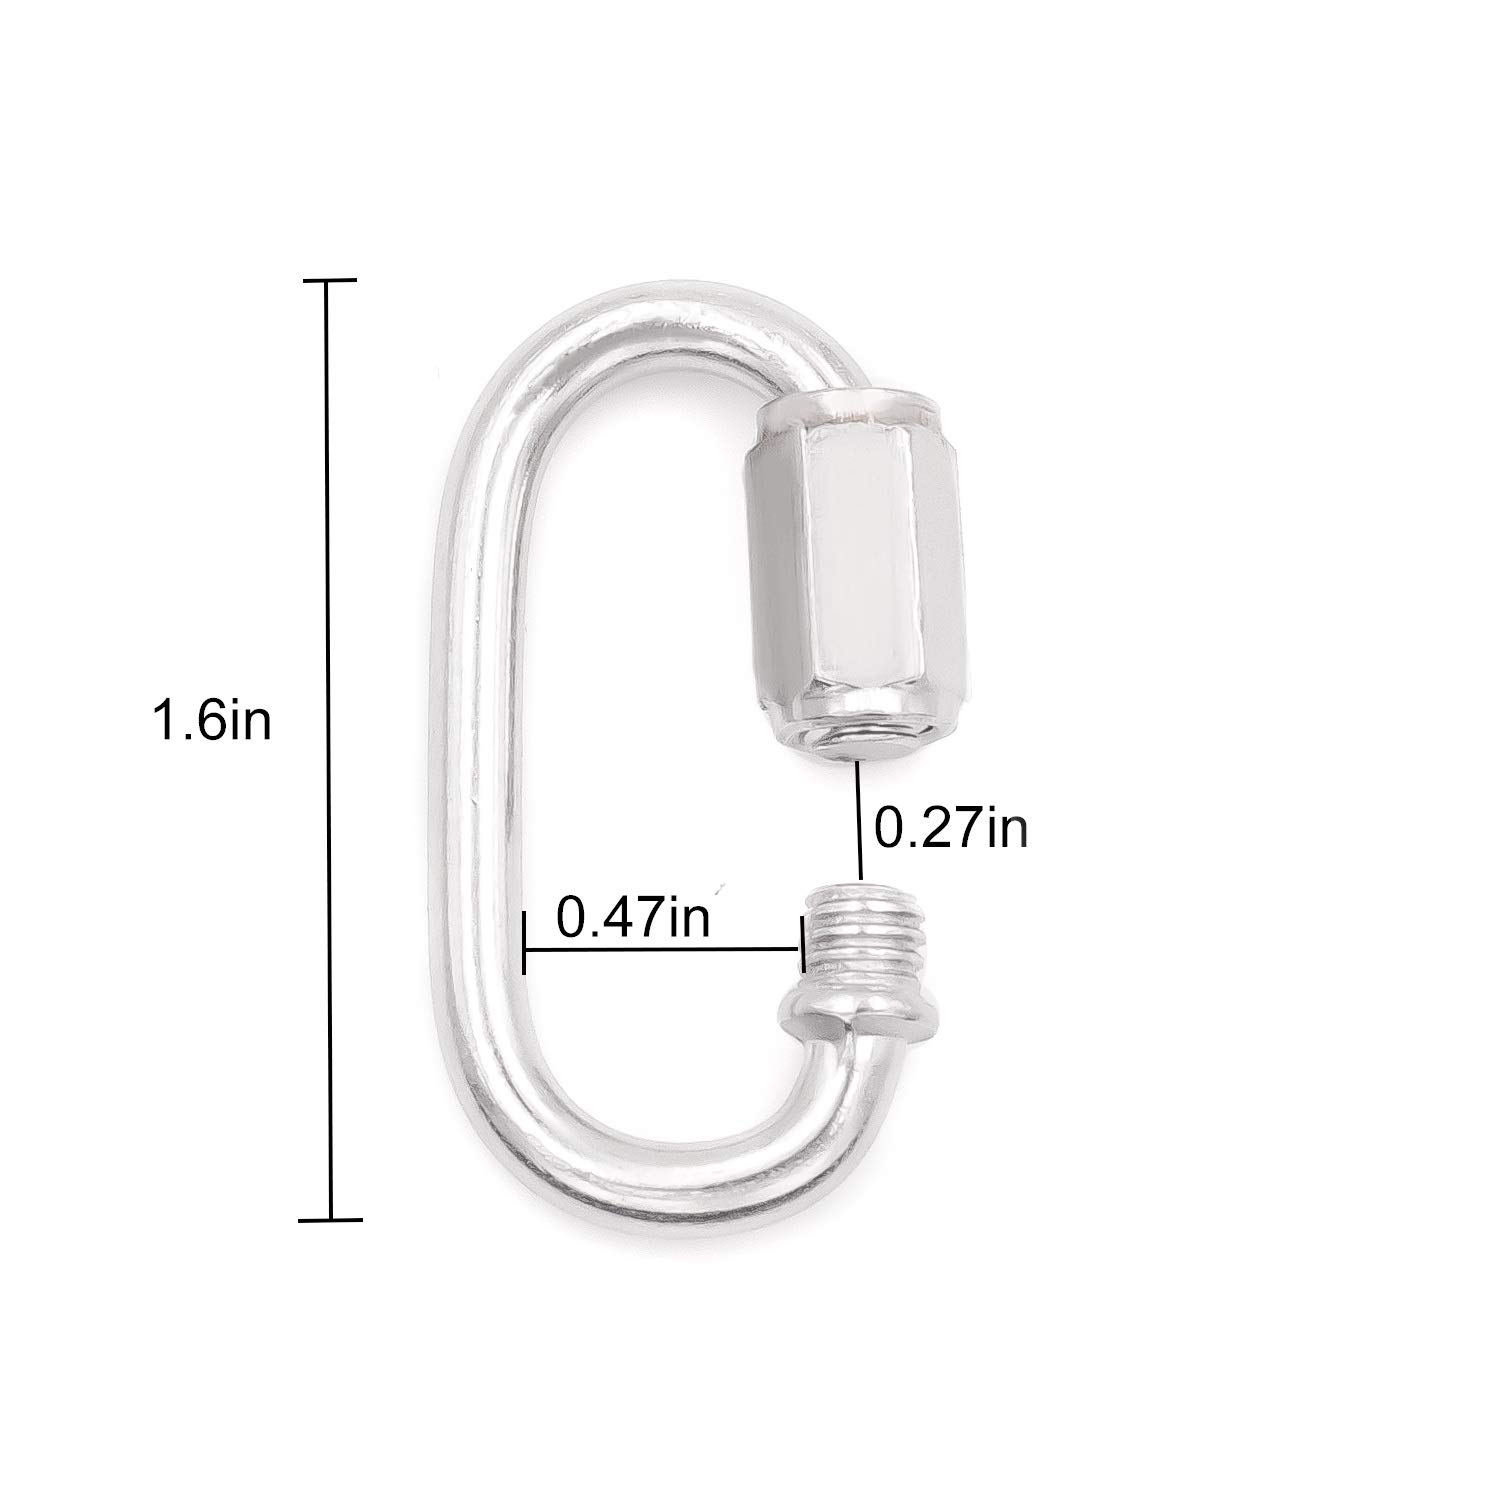 Max. Load 500 Lb Heavy Duty D Shape Locking Looks for Carabiner Camping and Outdoor Equipment 24 Pack Quick Link M4 4mm 5//32 approximate 1//8 Stainless Steel Chain Connector by KINJOEK Hammock